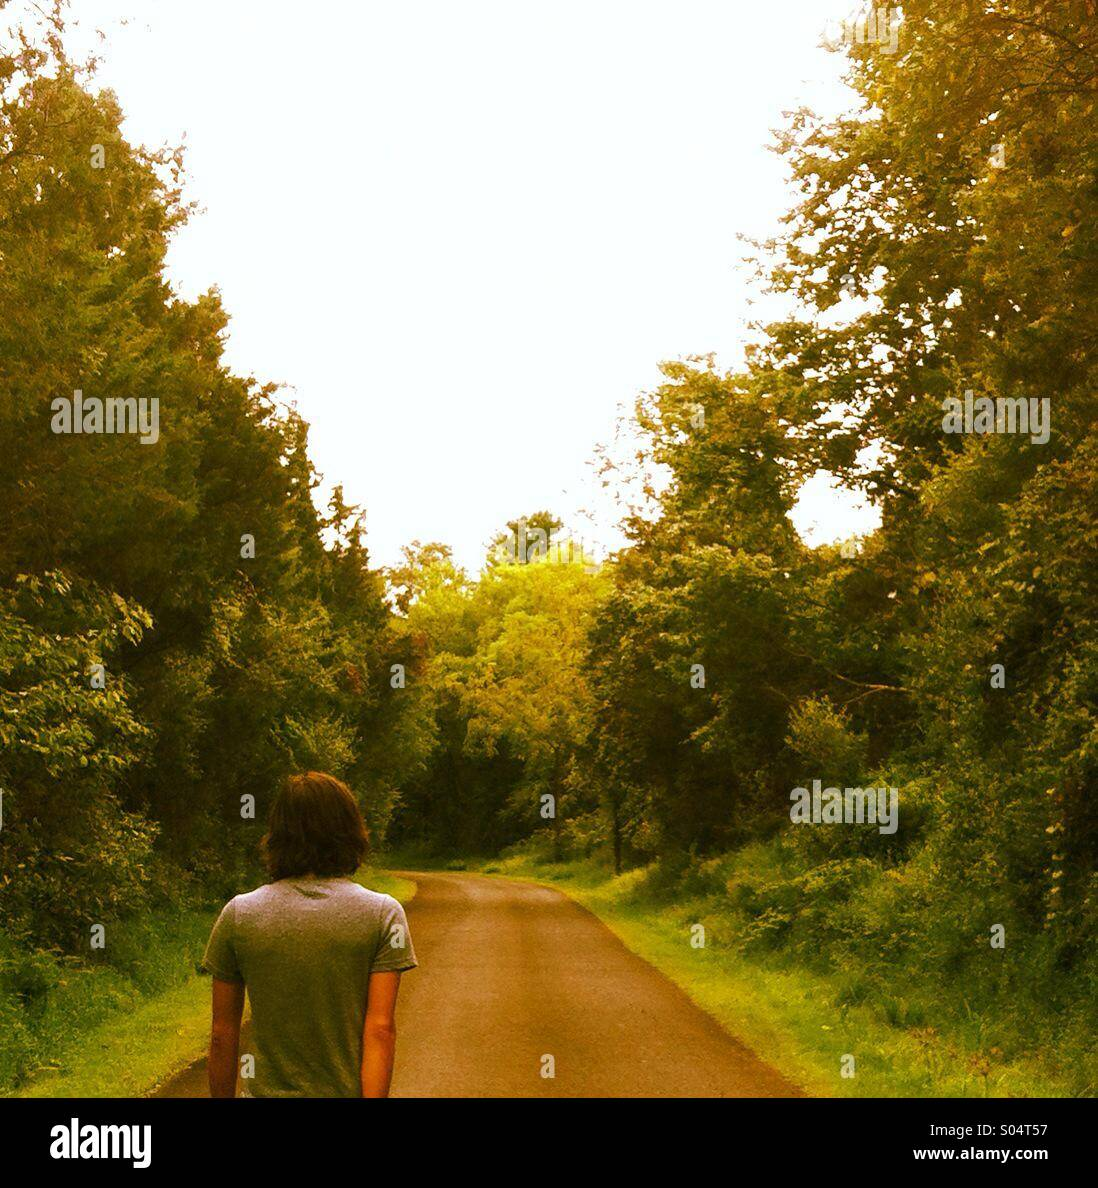 A young man walks down a narrow lane surrounded by trees. Stock Photo